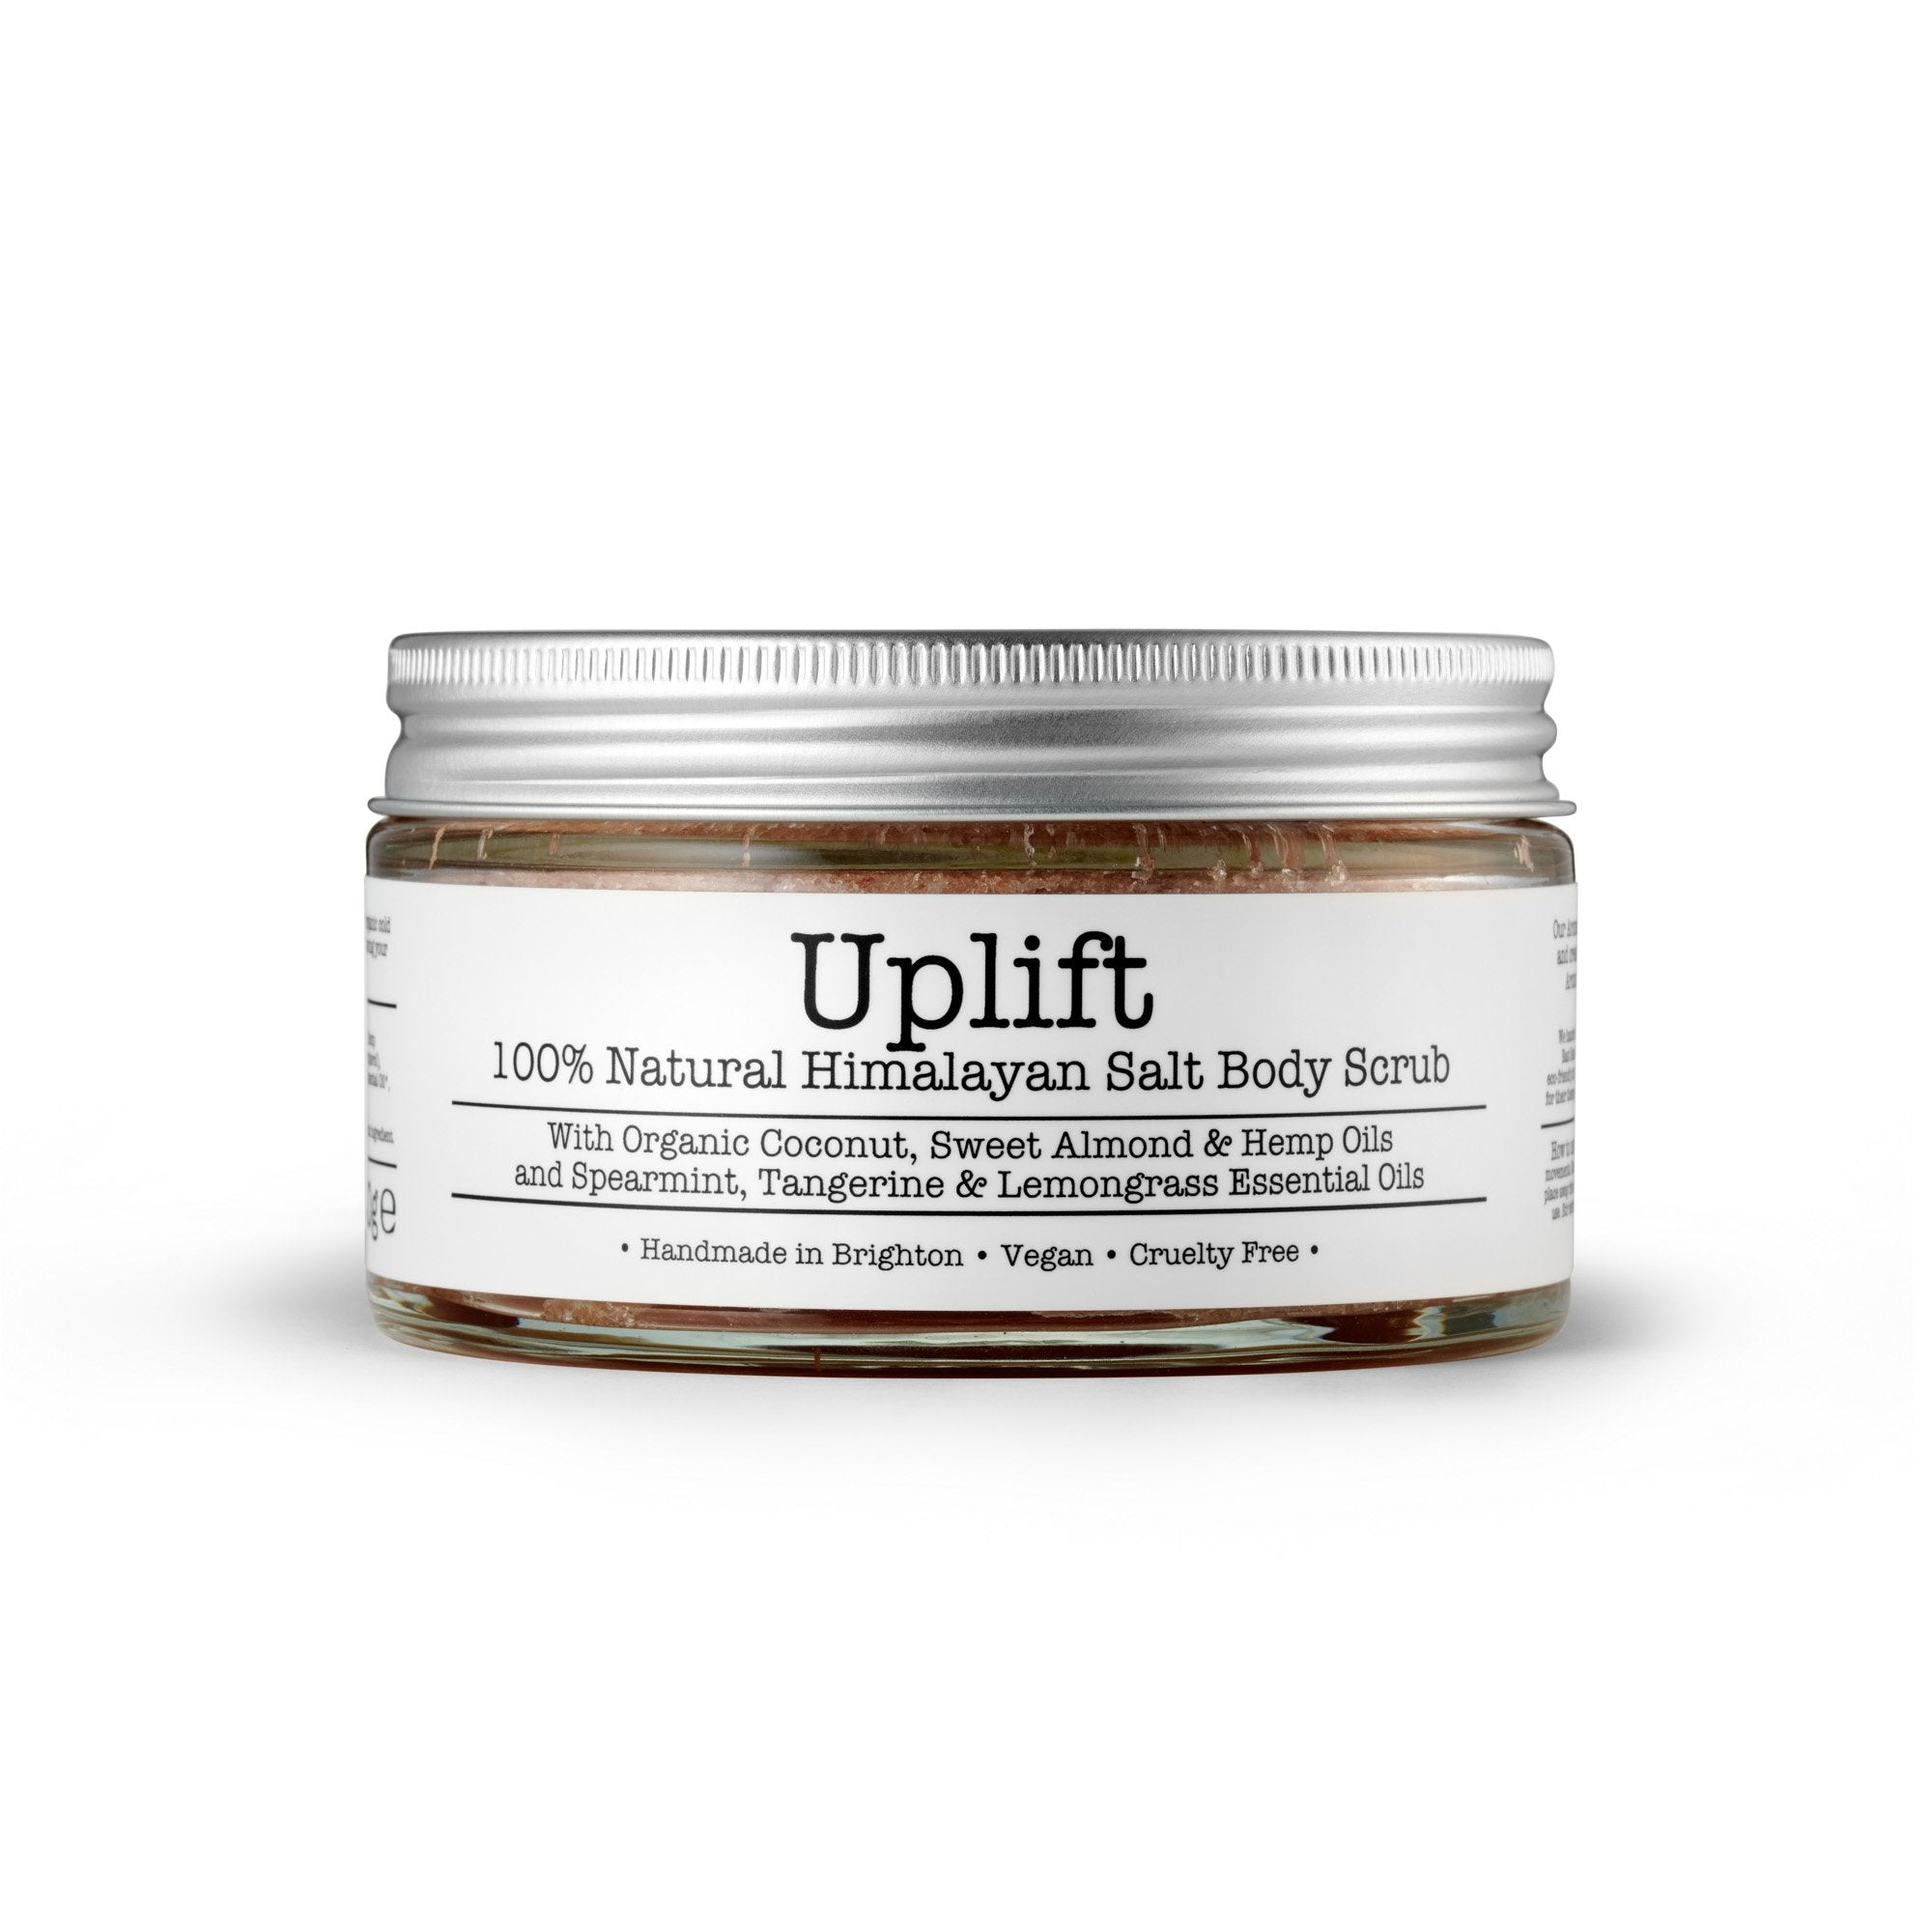 Uplift Himalayan Salt Body Scrub by Corinne Taylor. 100% natural, vegan, plant based, cruelty free. Made with a combination of organic Coconut, Hemp and Sweet Almond Oils along with, vitamin E and organic Spearmint, Lemongrass, Tangerine & Peppermint essential oils.